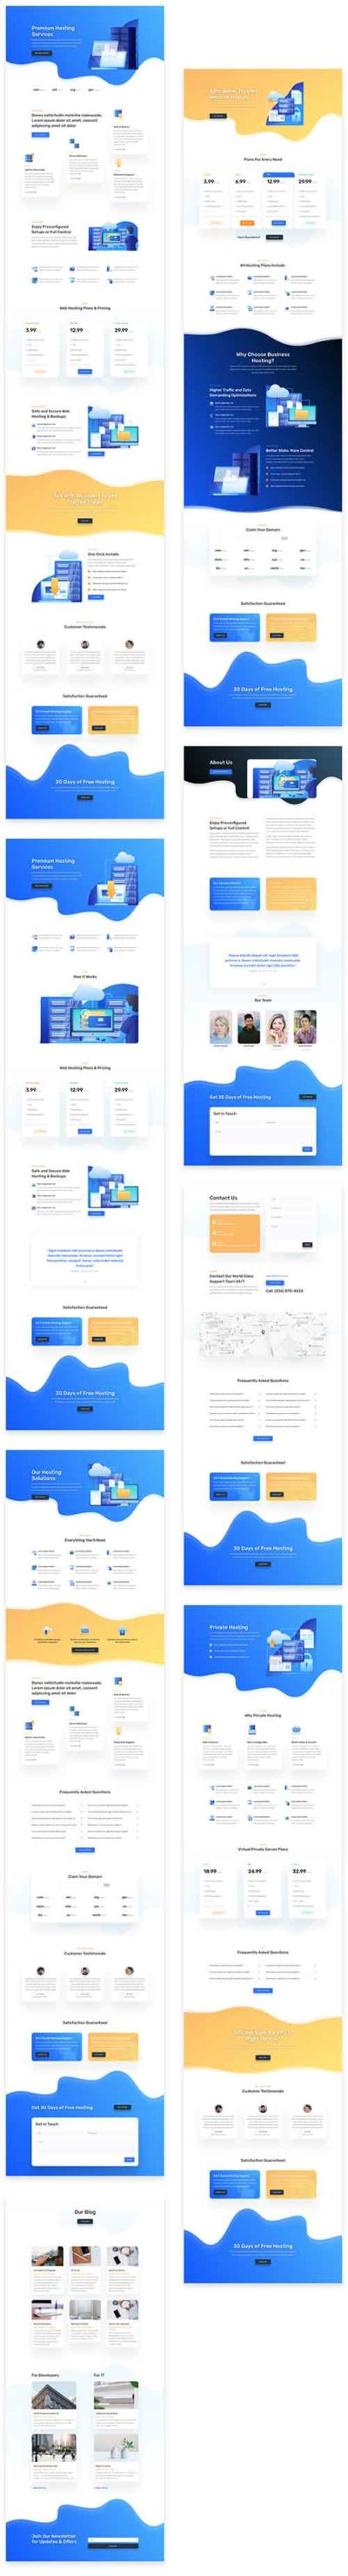 divi hosting pack